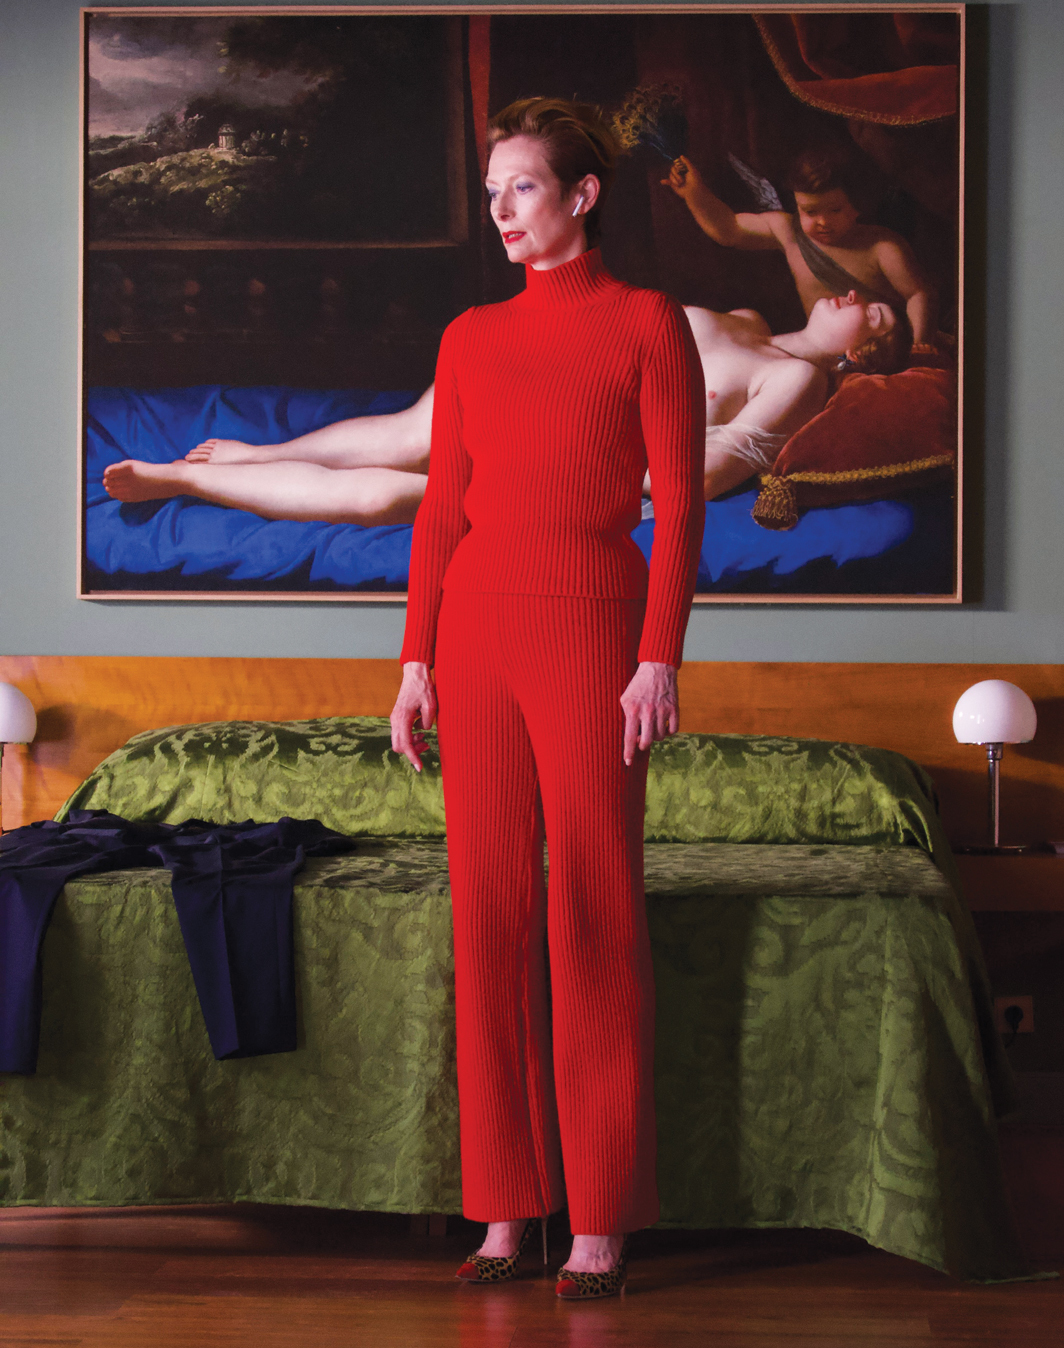 Pedro Almodóvar, The Human Voice, 2020, 4K video, color, sound, 30 minutes. Woman (Tilda Swinton). Production still.